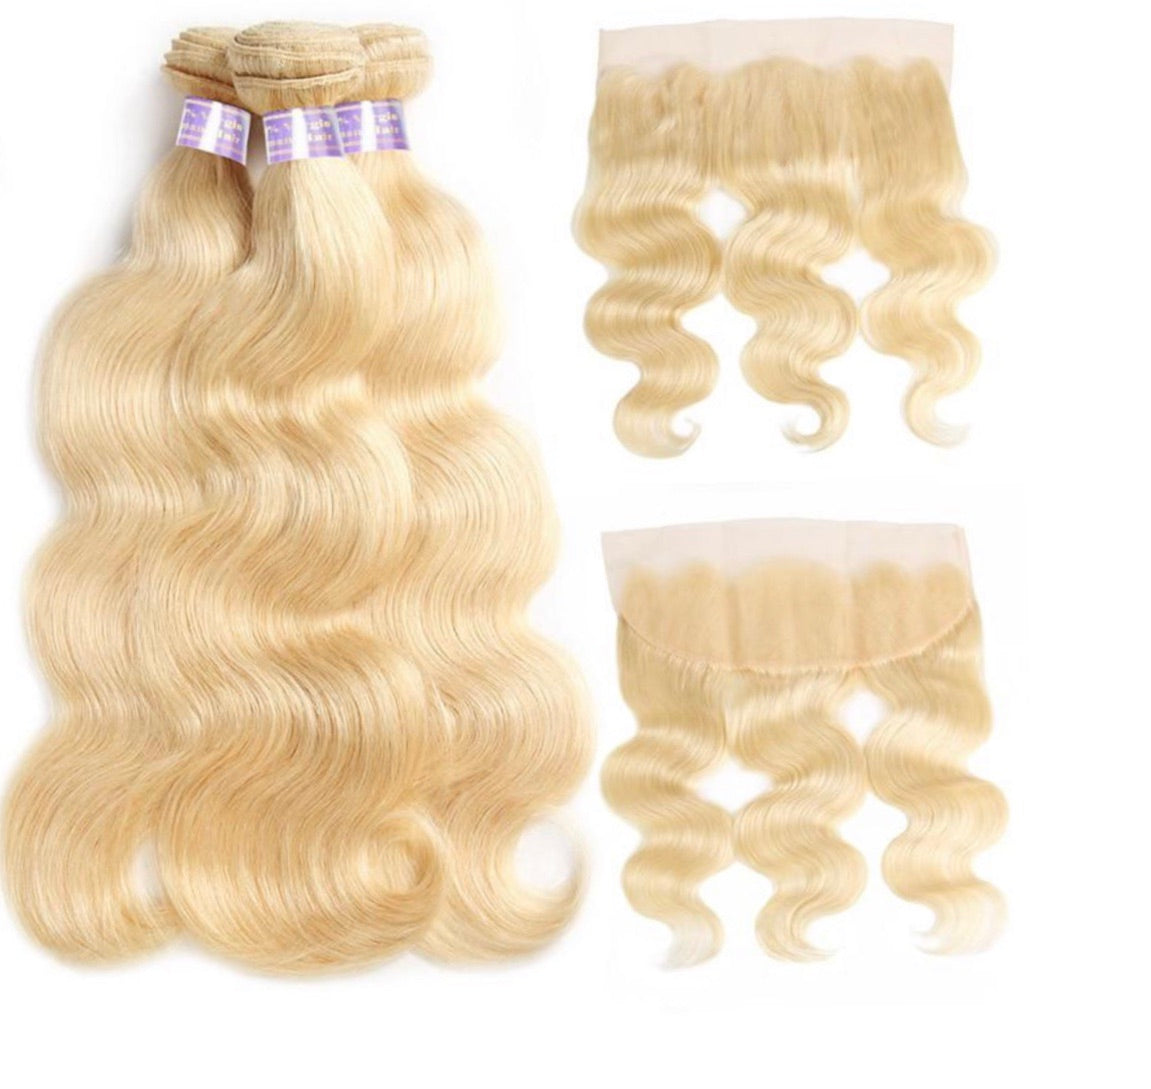 613 Blonde Straight/Body Wave 3 Bundles With 13*4 Frontal